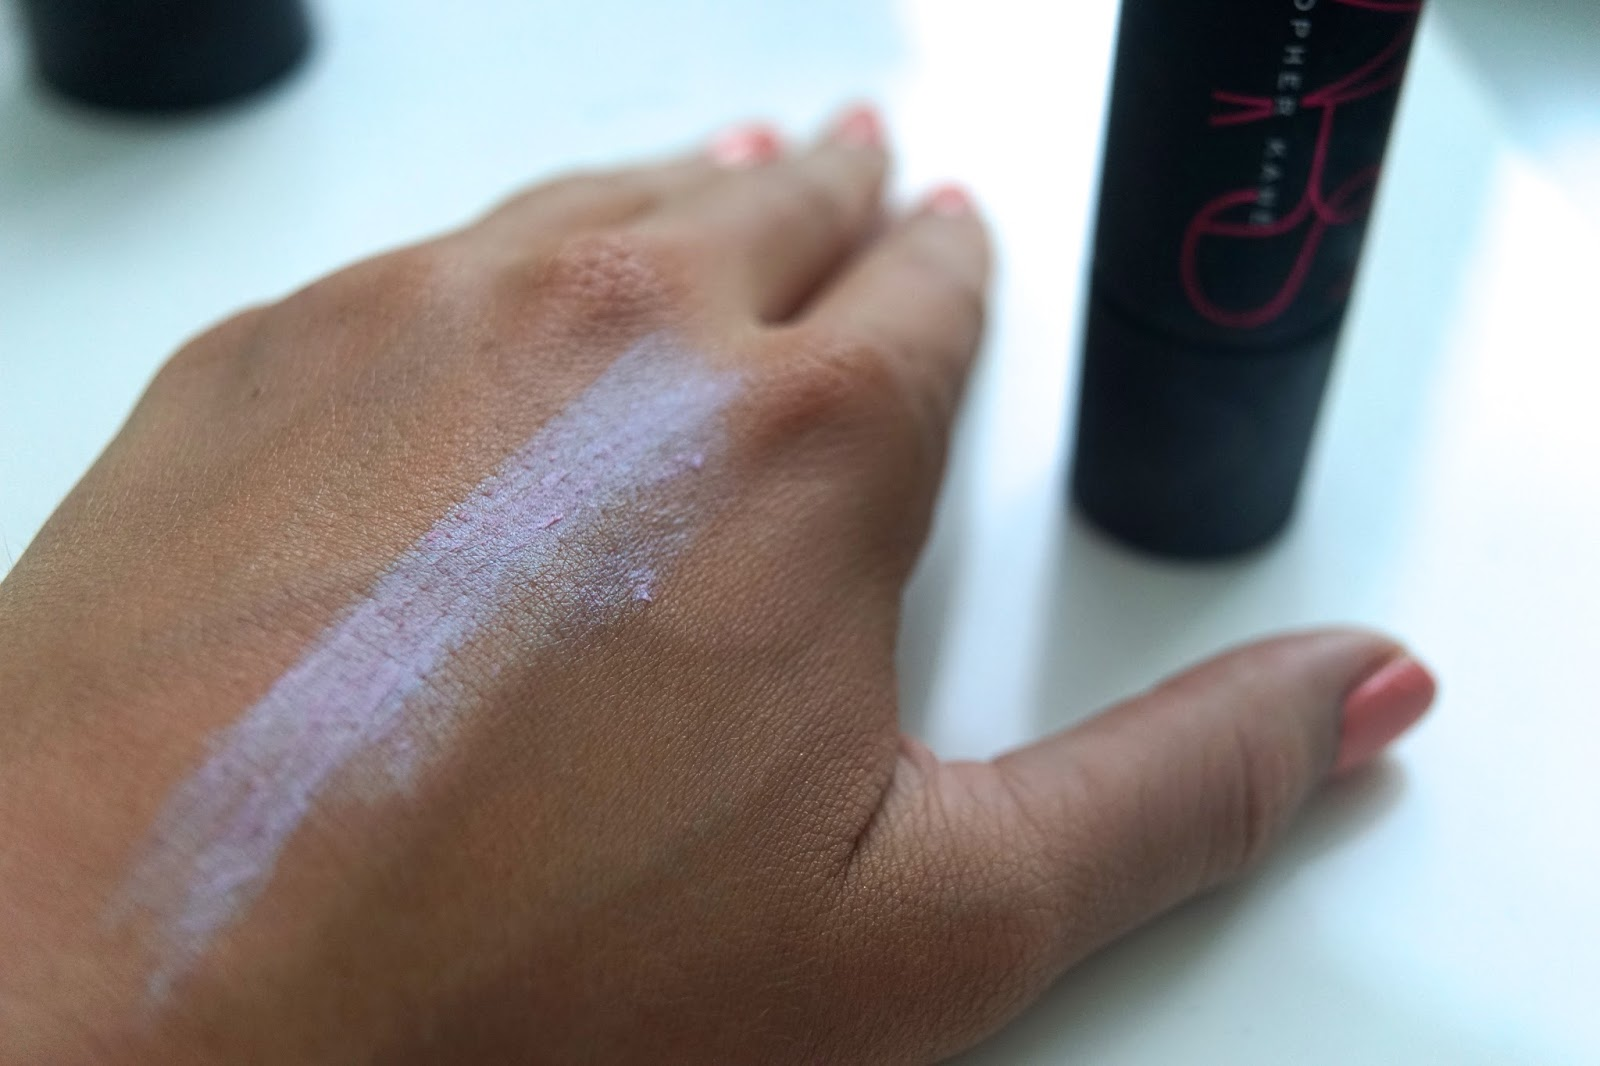 Christopher Kane Violet Atom Illuminating Multiple swatch